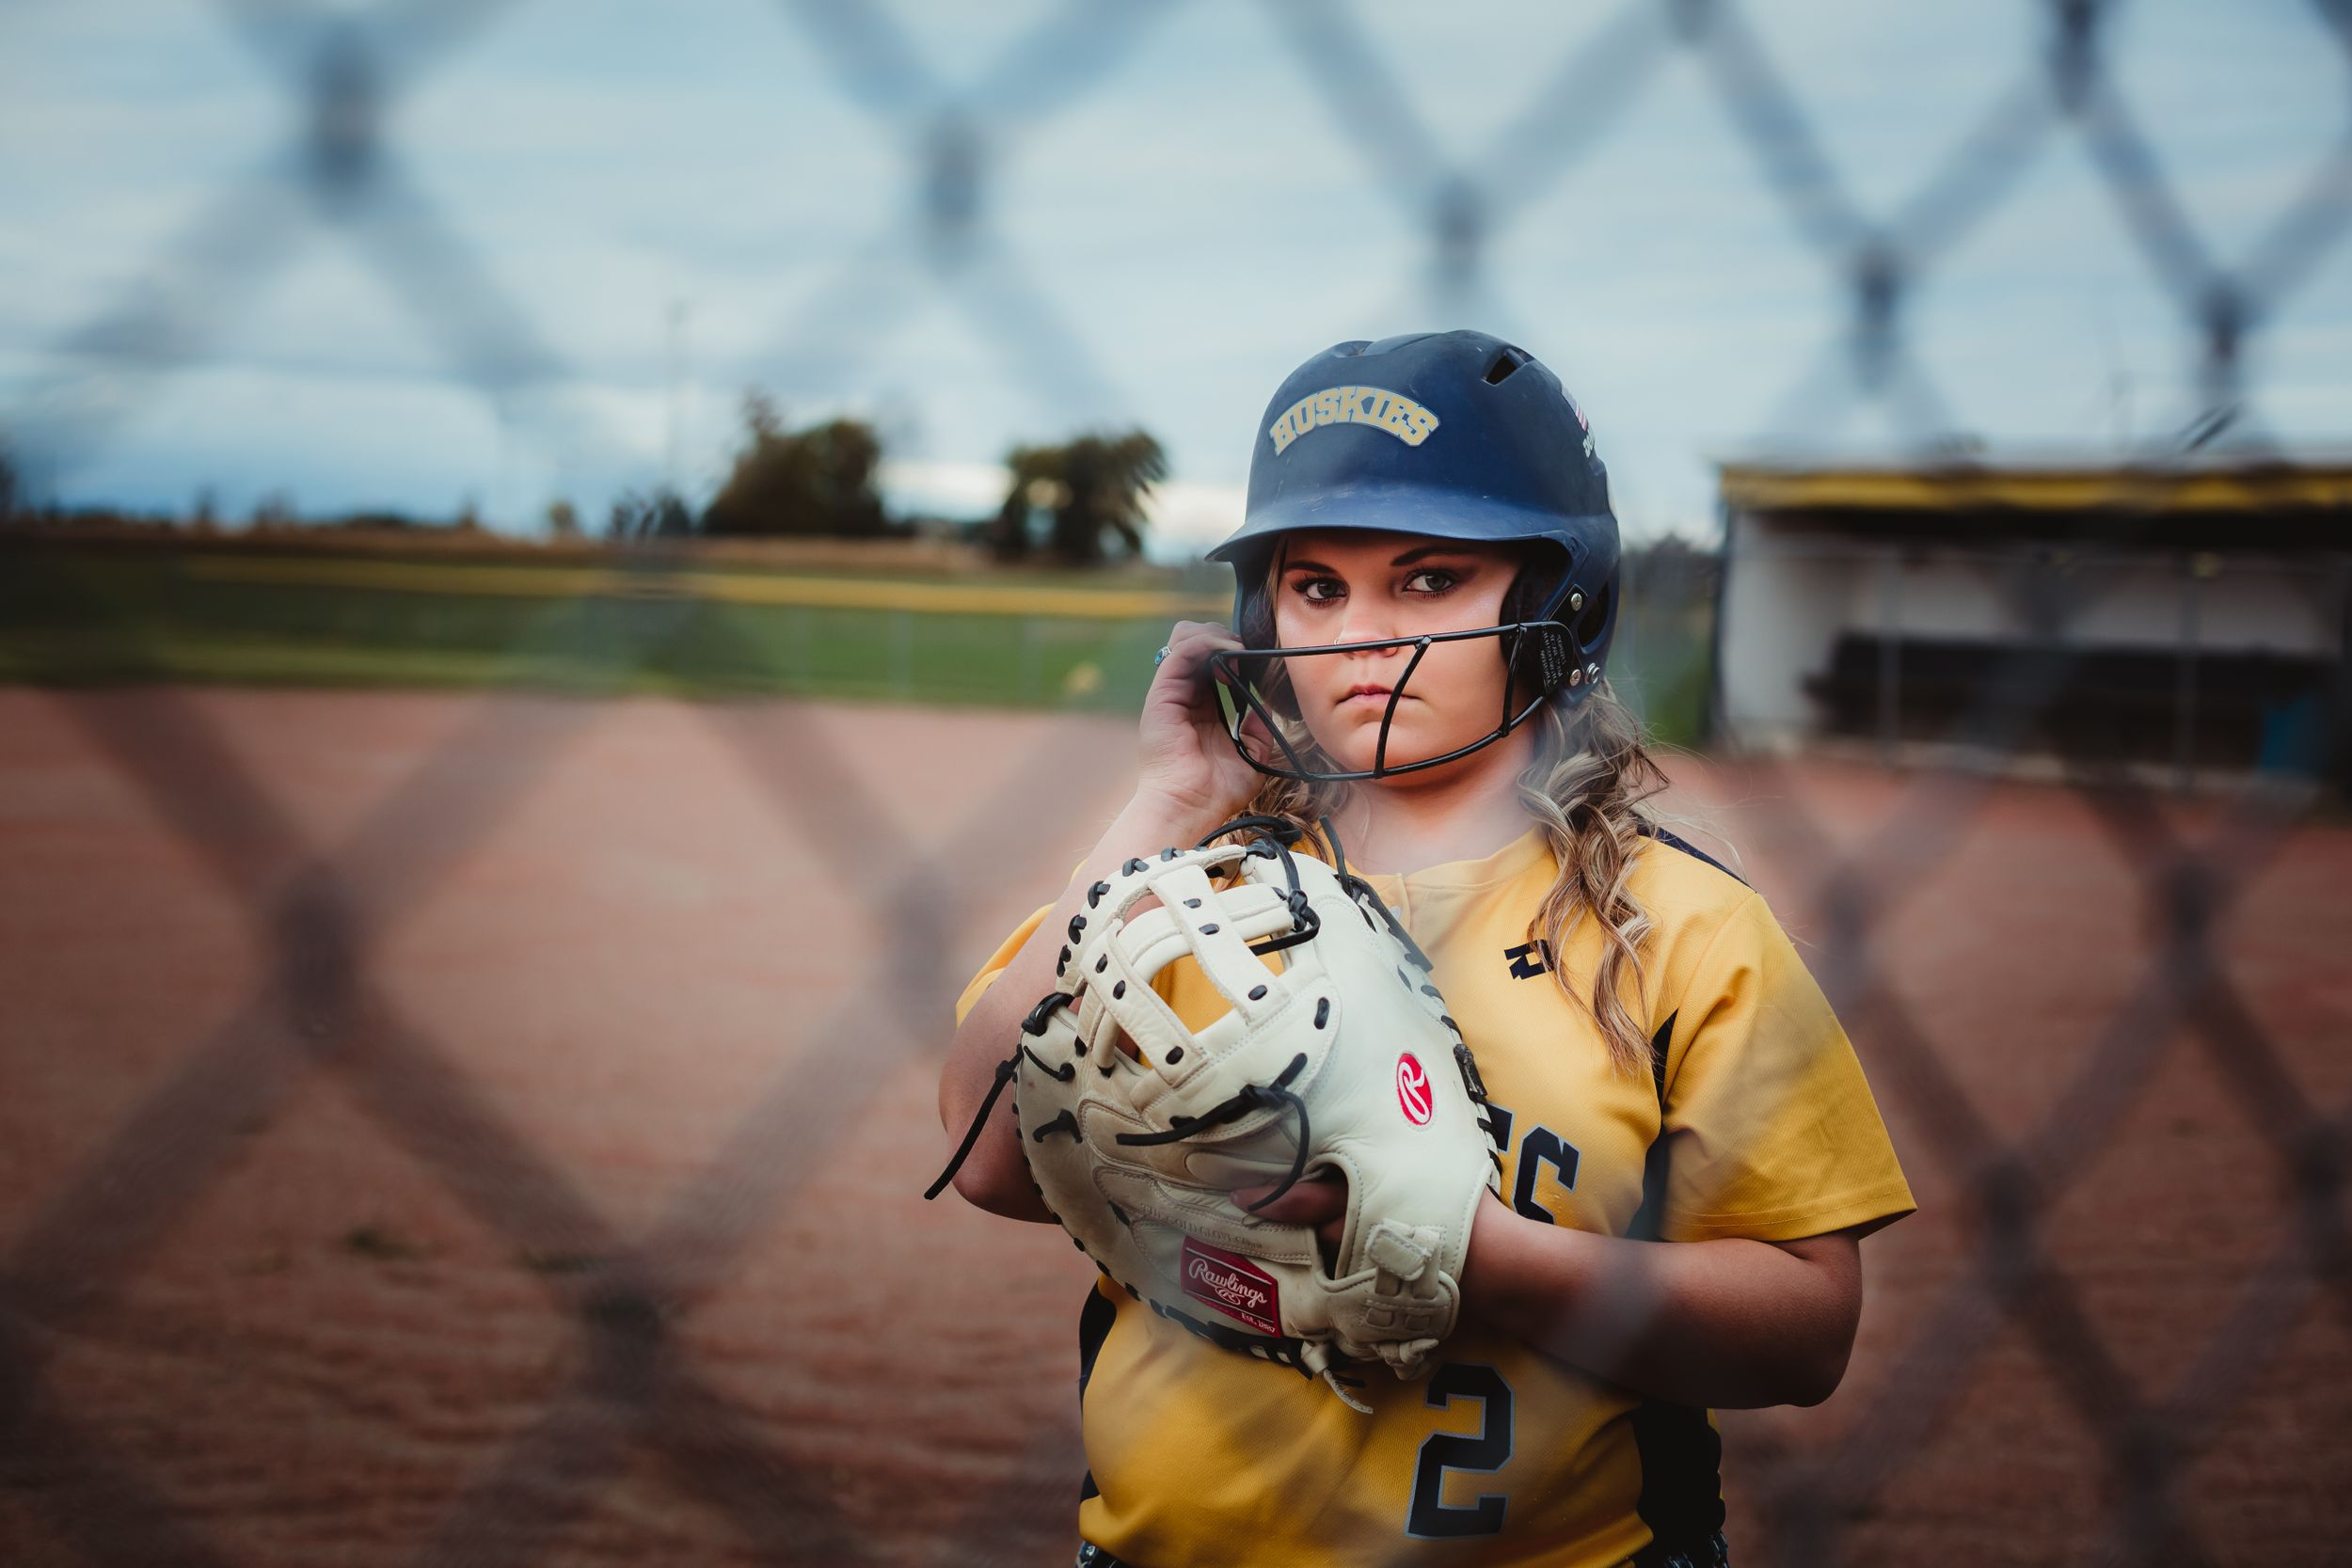 High school senior girl with glove and helmet standing on a softball field behind the fence.